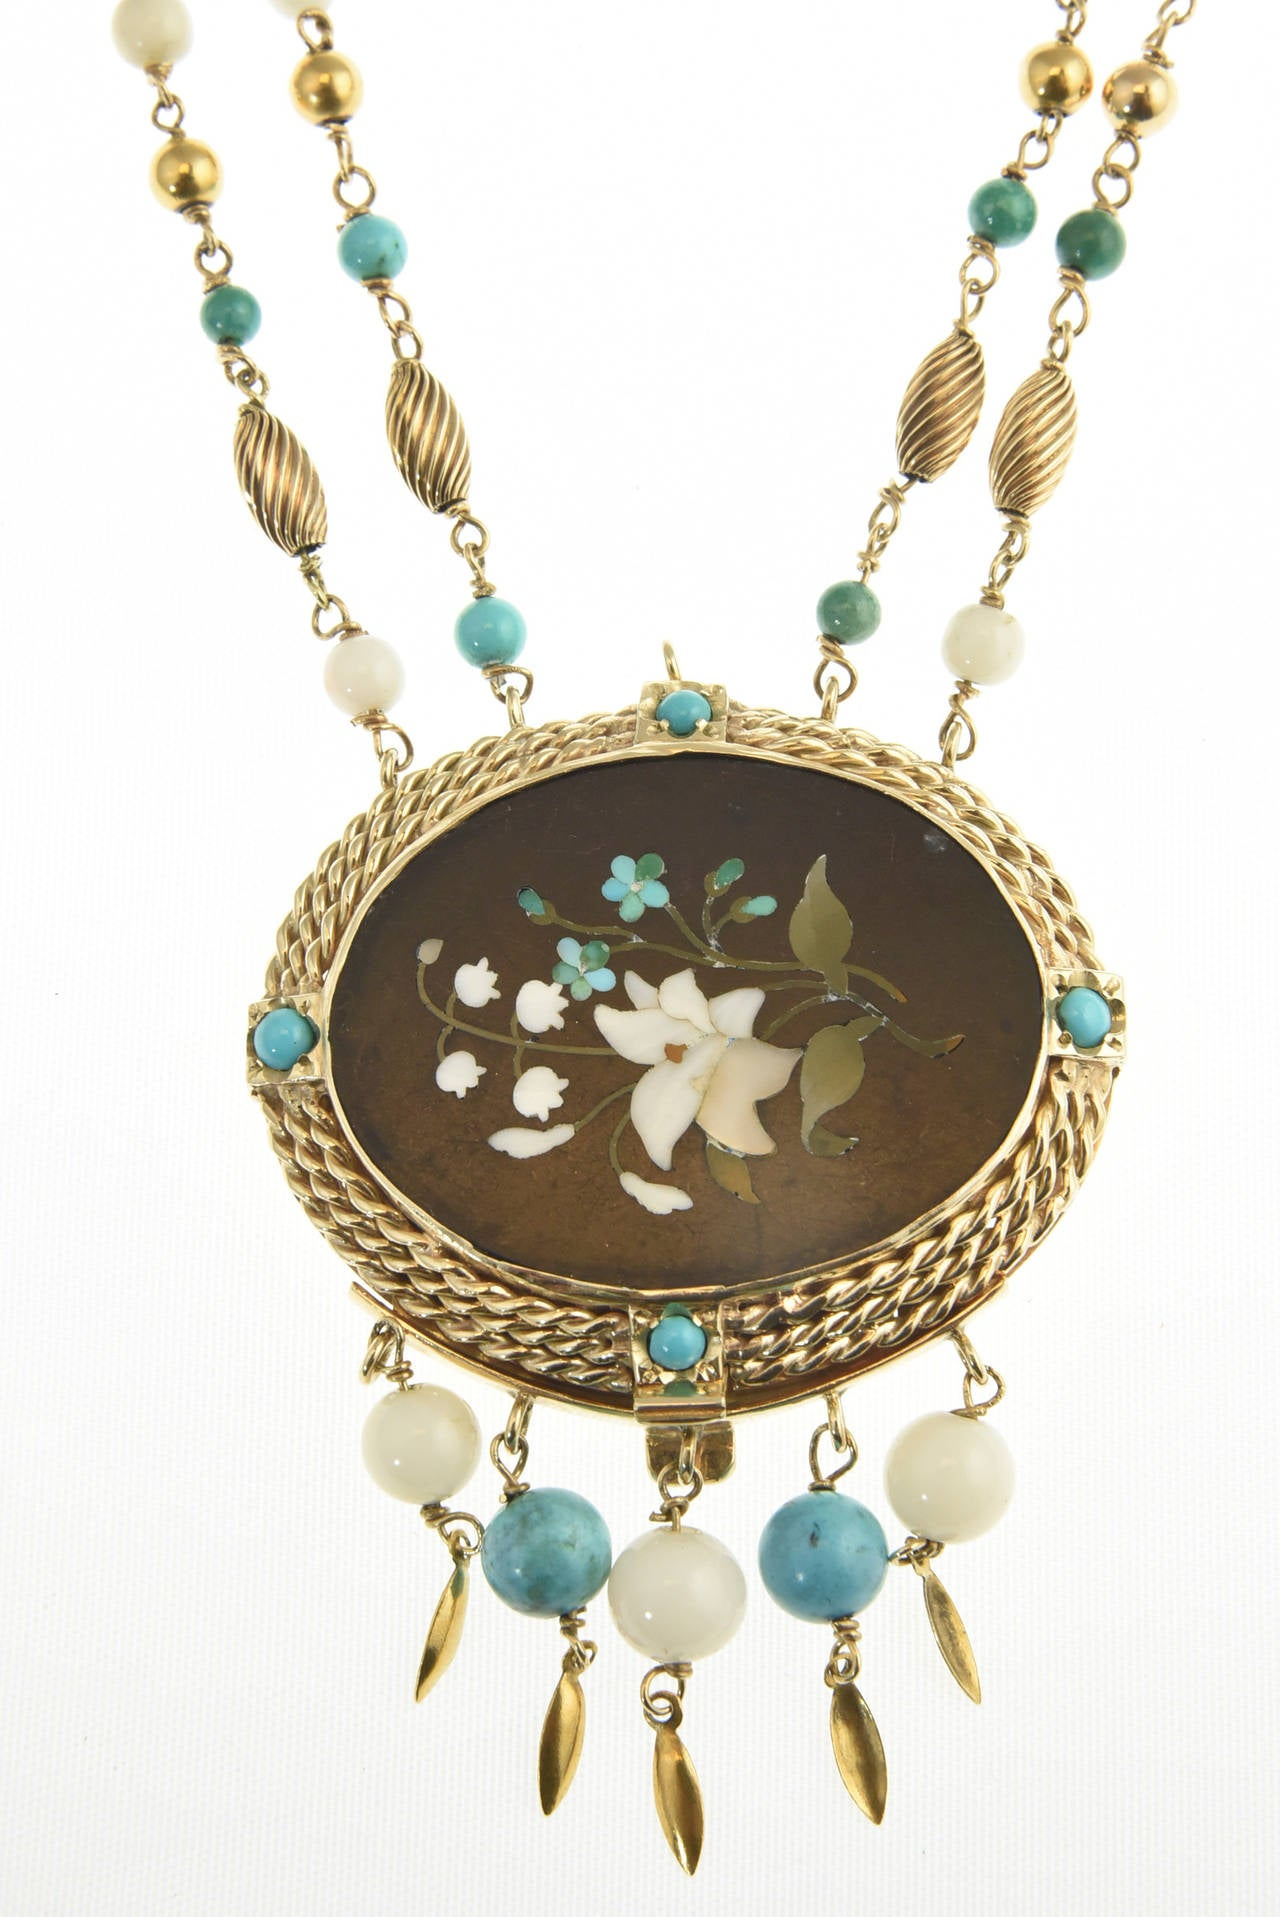 Cleopatra Inspired Turquoise and Gold Necklace with Victorian Pietra Dura Clasp 2